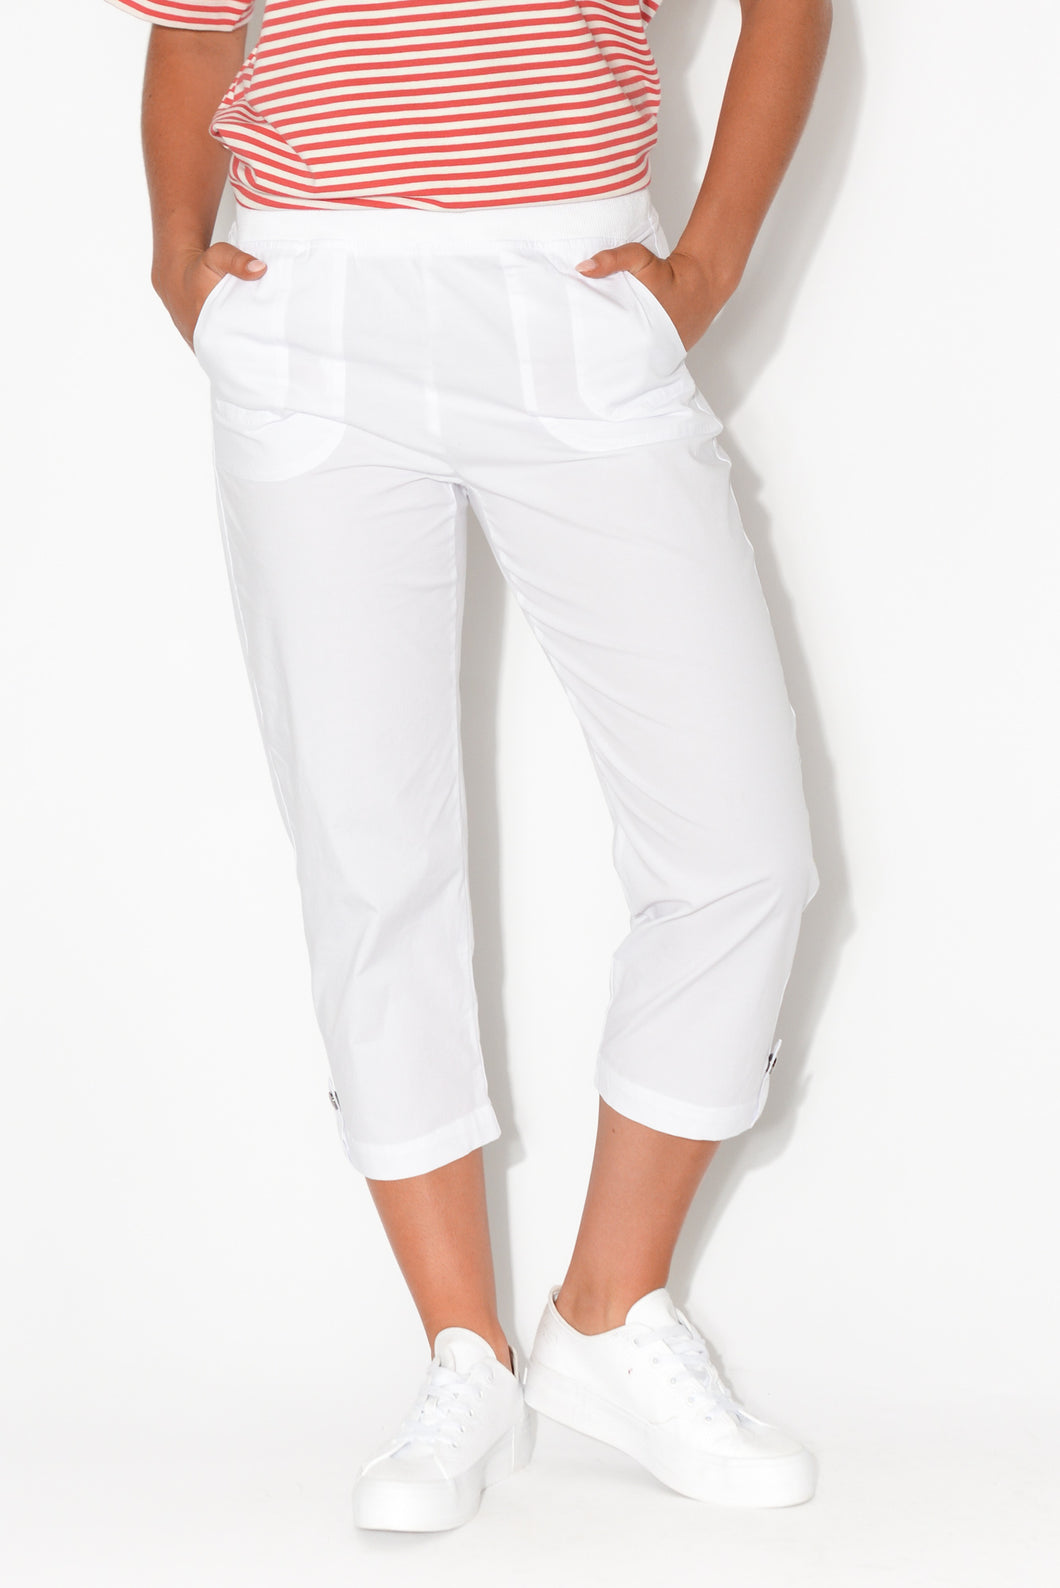 Marta White Cotton 3/4 Pant